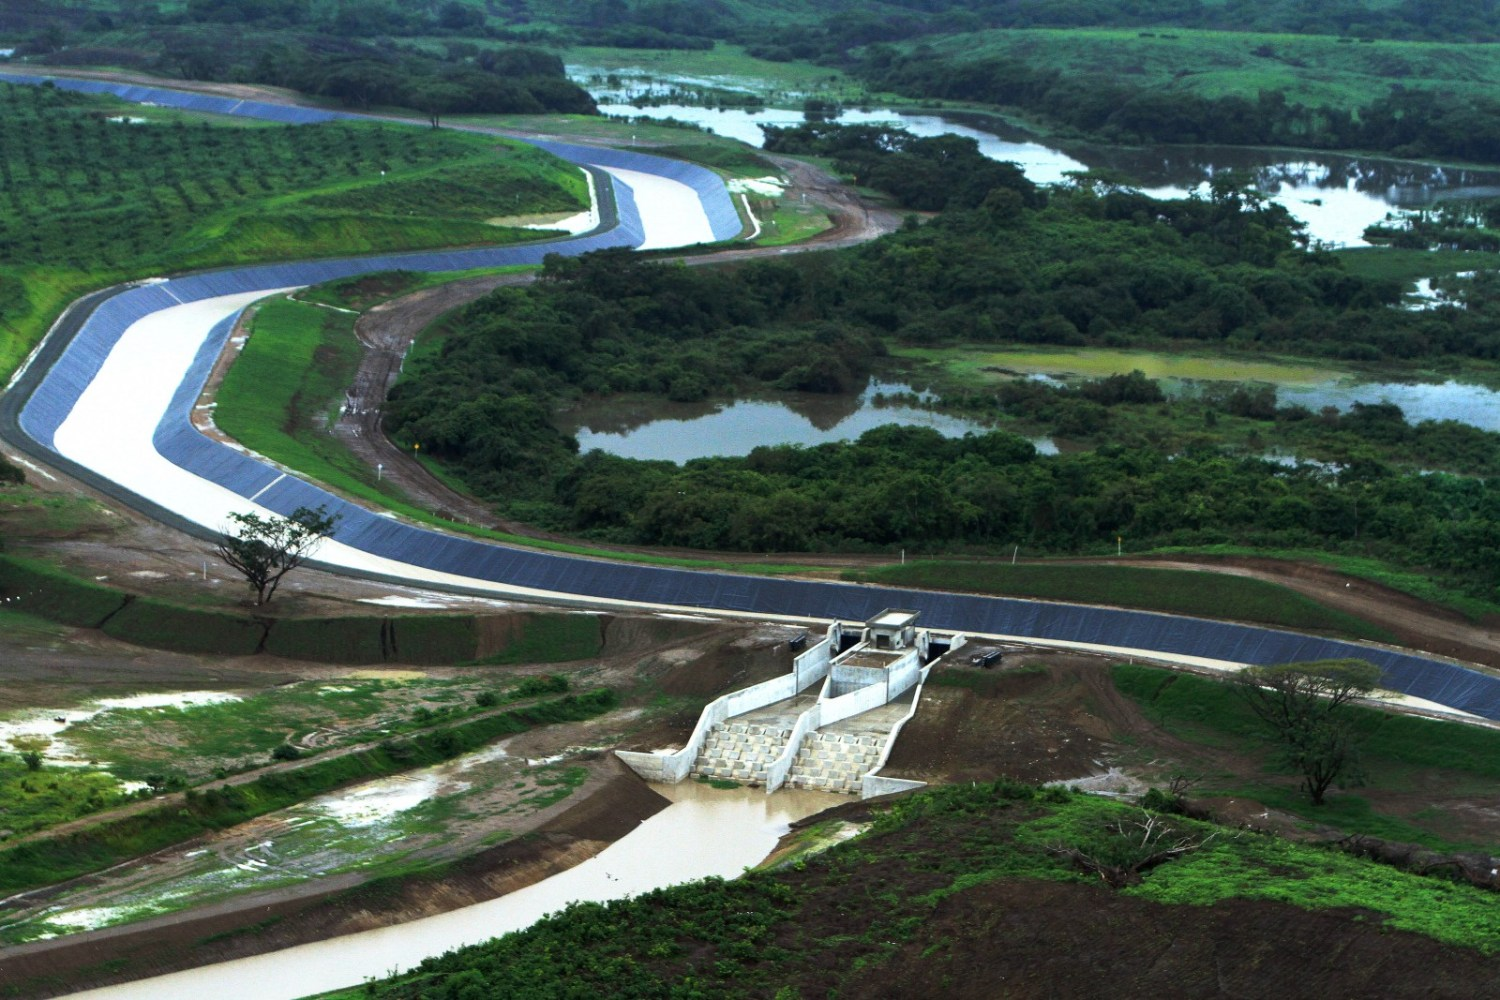 The Daule-Vinces water transfer scheme in Guayas and Los Rios provinces is one of a series of national water projects meant to control irrigation and floodwaters in Ecuador. Photo by César Muñoz / ANDES via Flickr Creative Commons